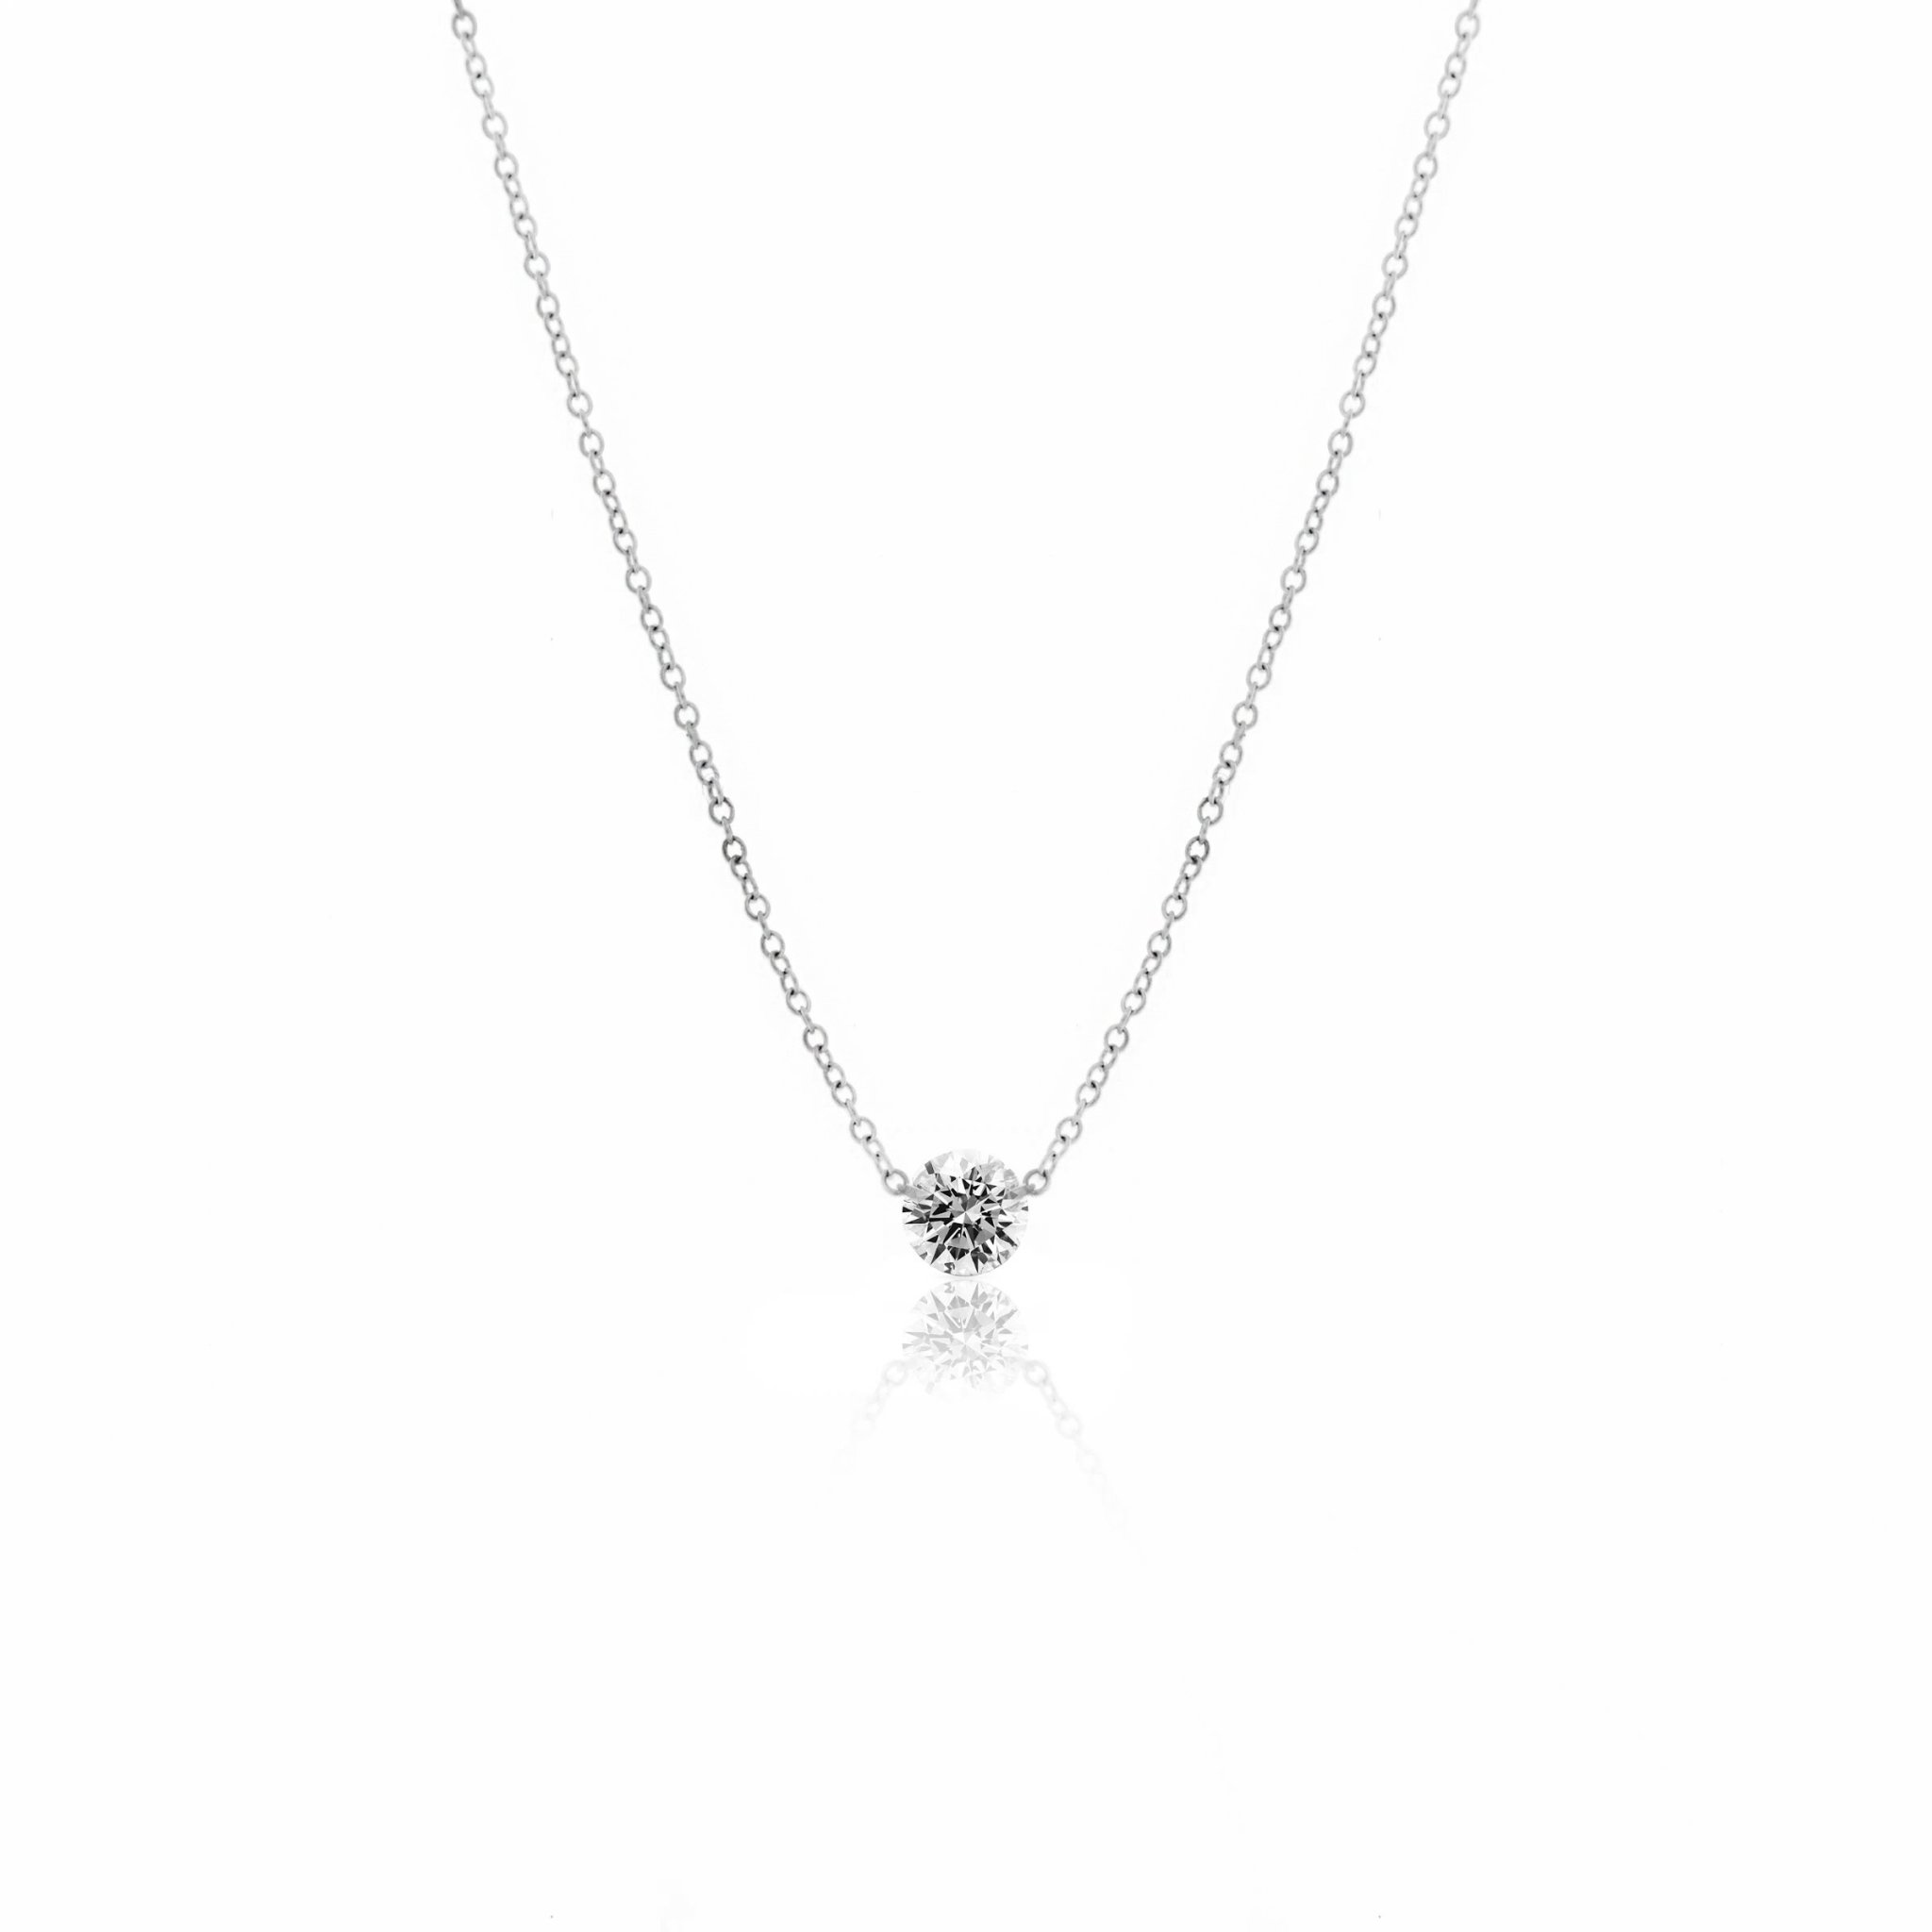 14kt Gold Drilled Diamond Necklace 0.30 carat